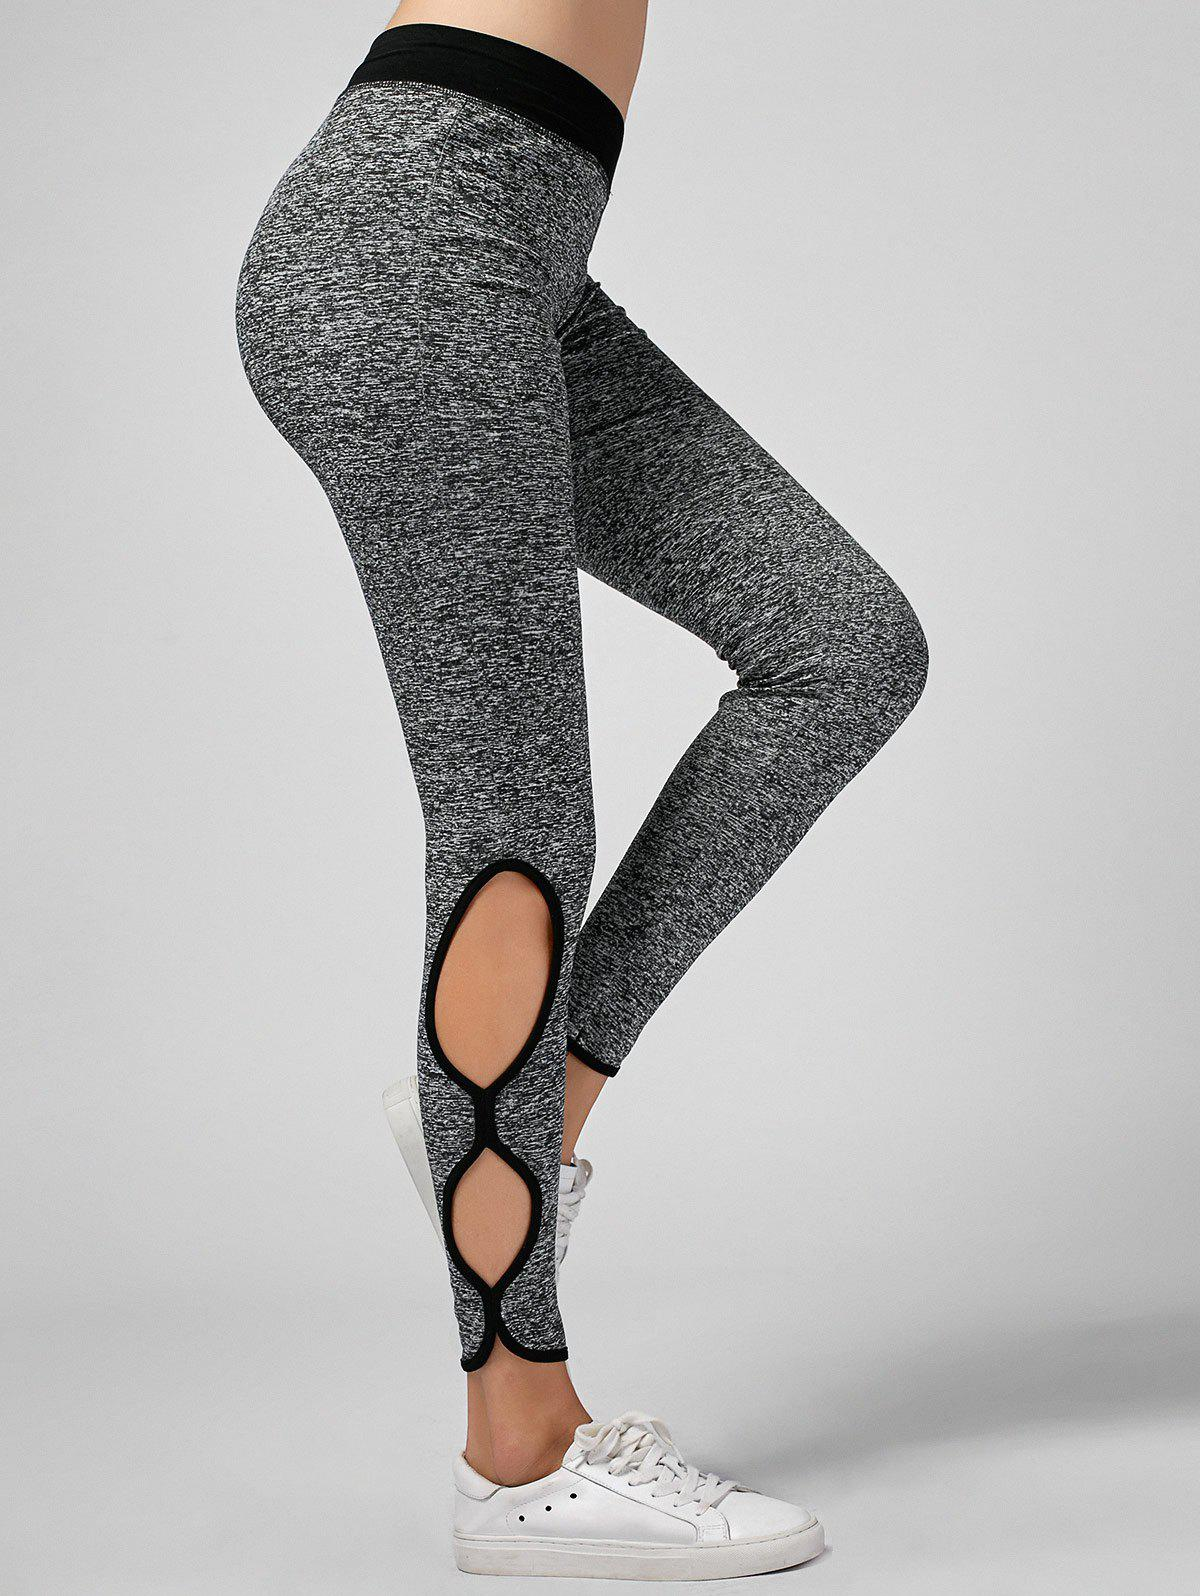 Cut Out Spaced Dyed Leggings - GRAY M